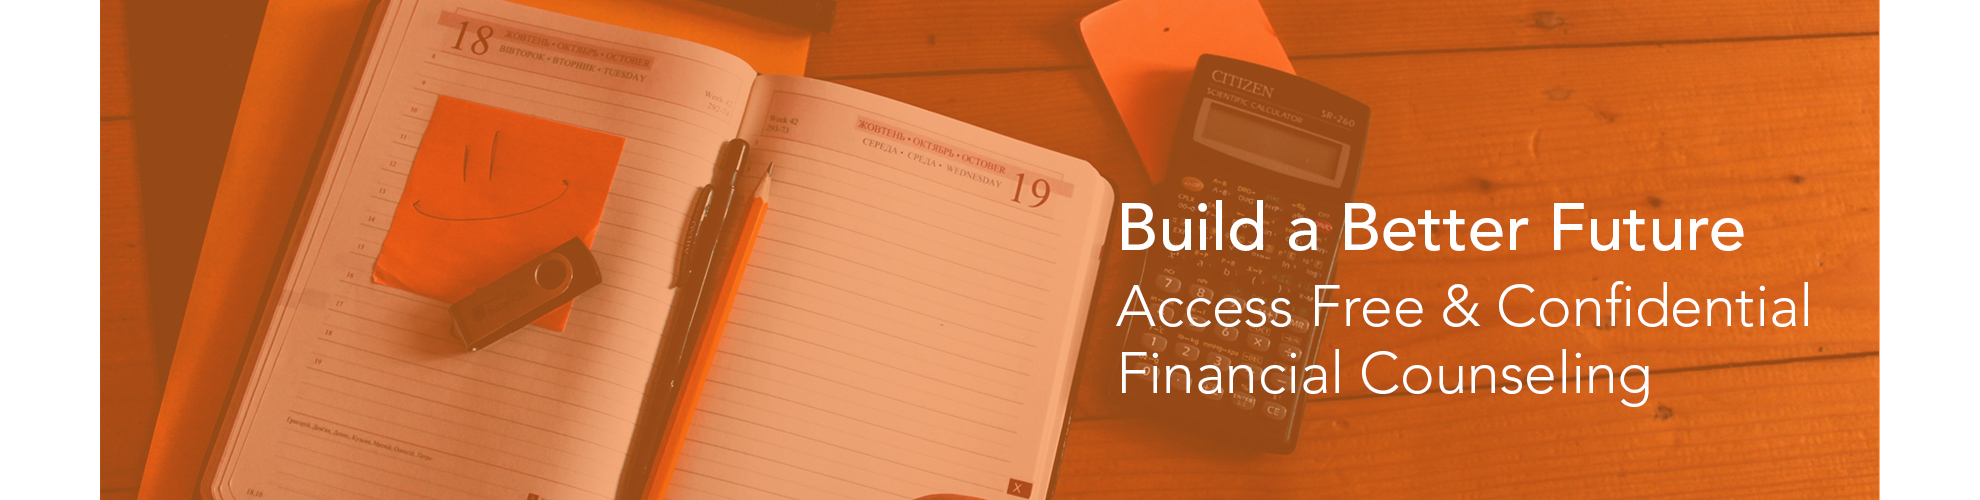 Build a Better Future. Access Free & Confidential Financial Counseling, click to learn more.